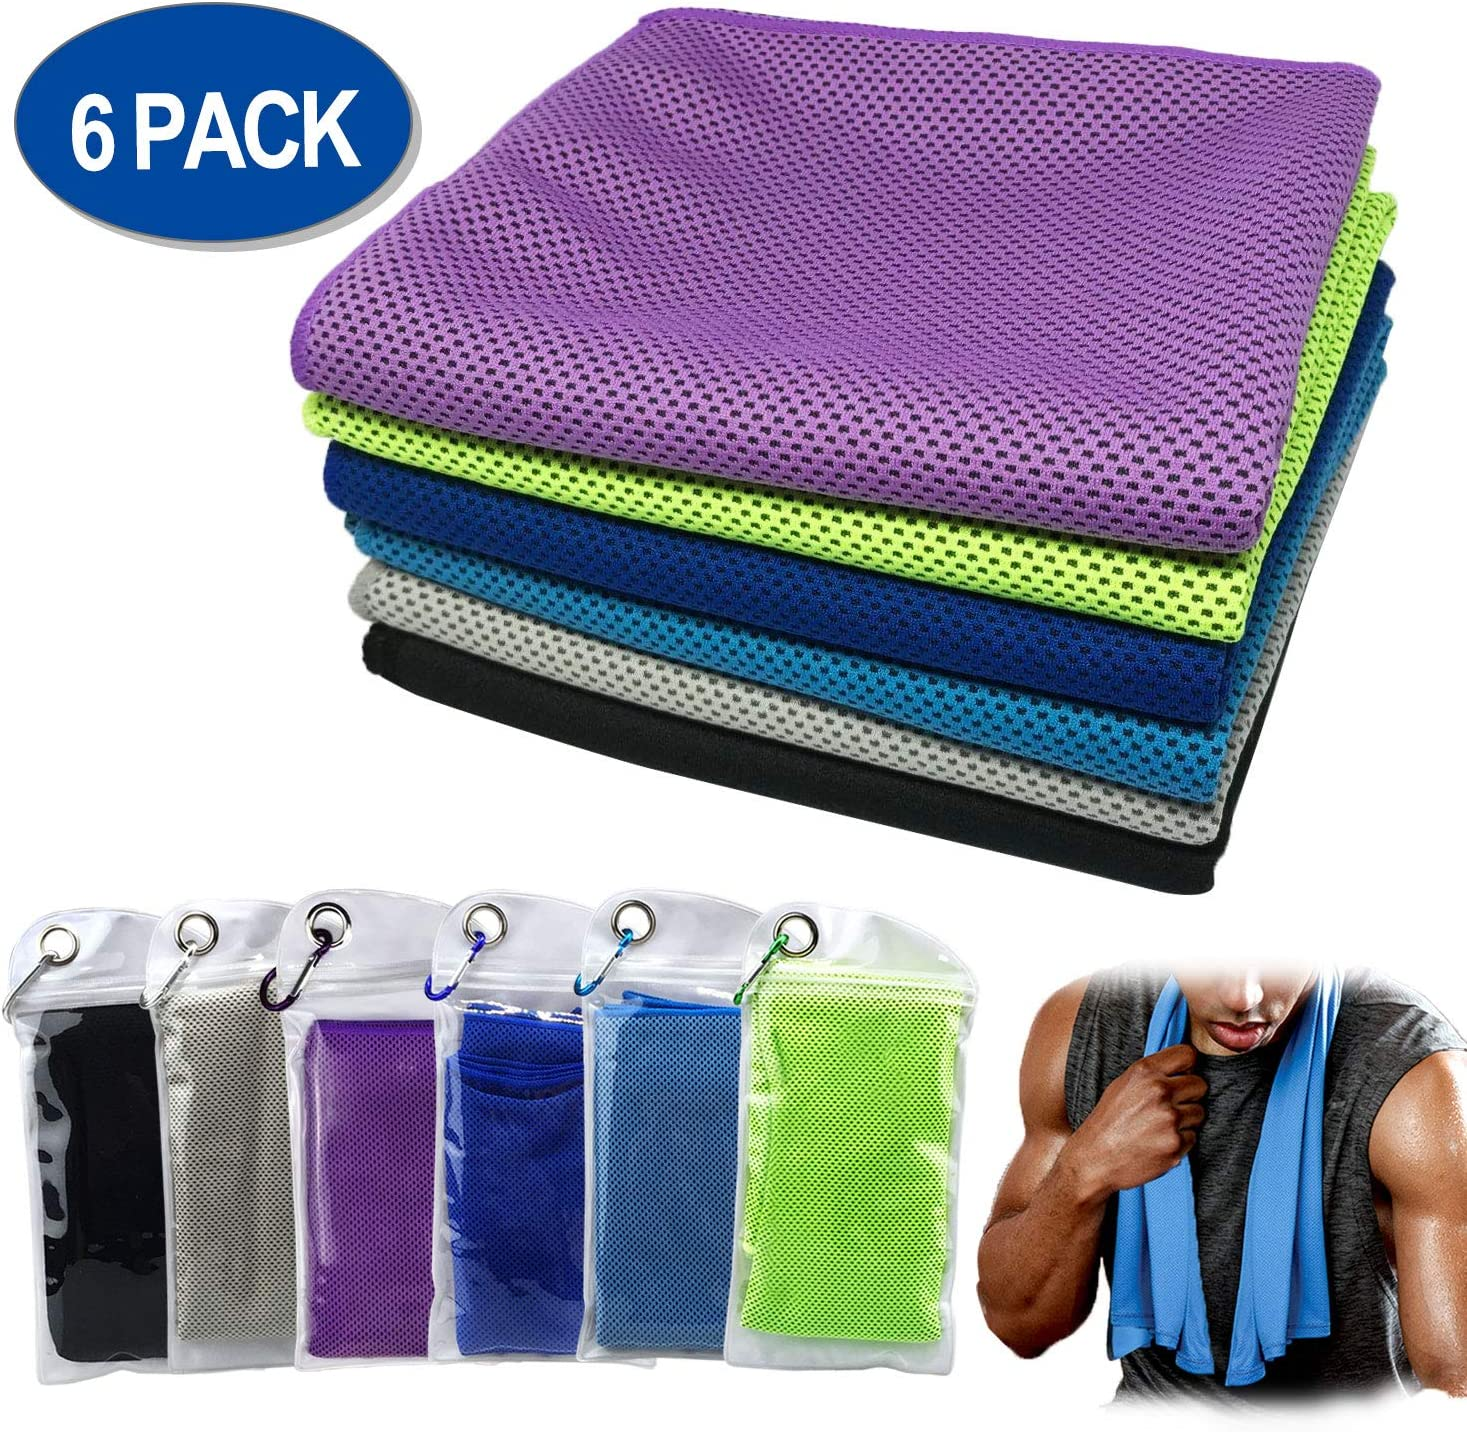 Cooling Towels for Neck 4 Pack / 6 Pack, Microfiber Towel Instant Cooling Relief, Soft Breathable Chilly Towel Lightweight for Workout, Camping, Travel, Gym,Yoga